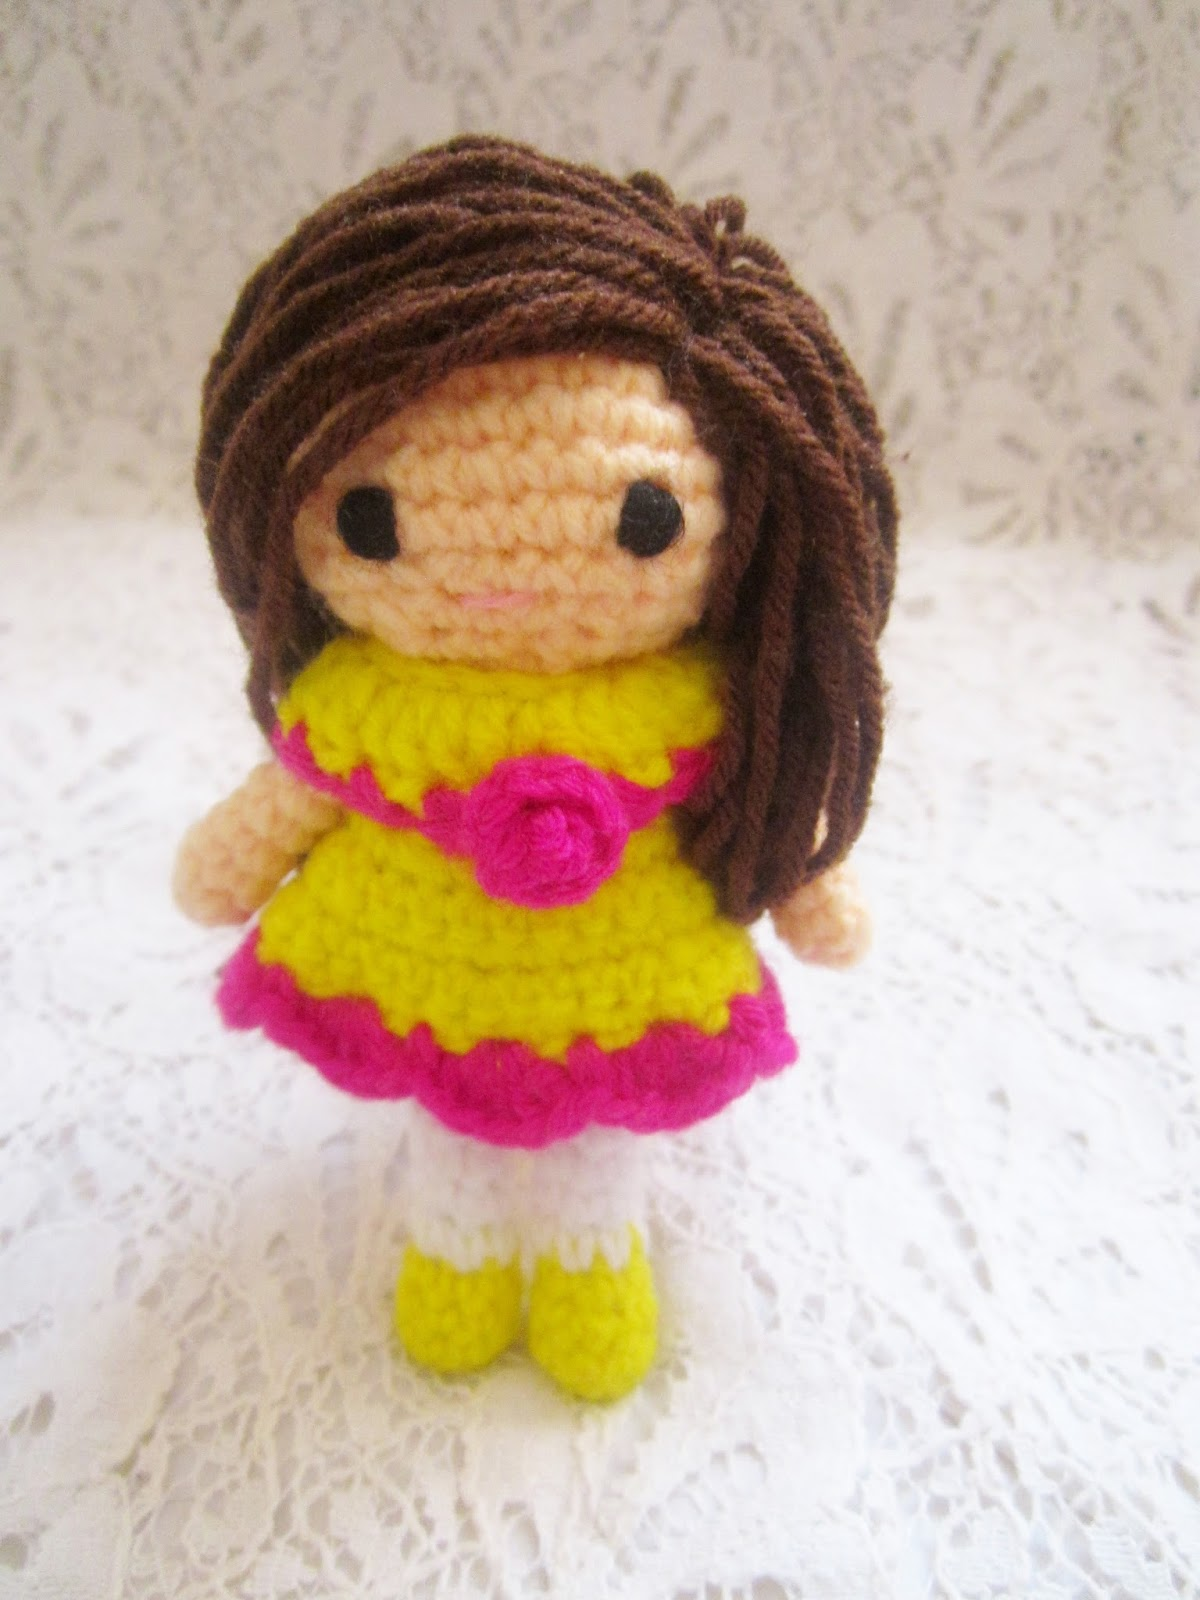 How to Crochet an Amigurumi Toy photo